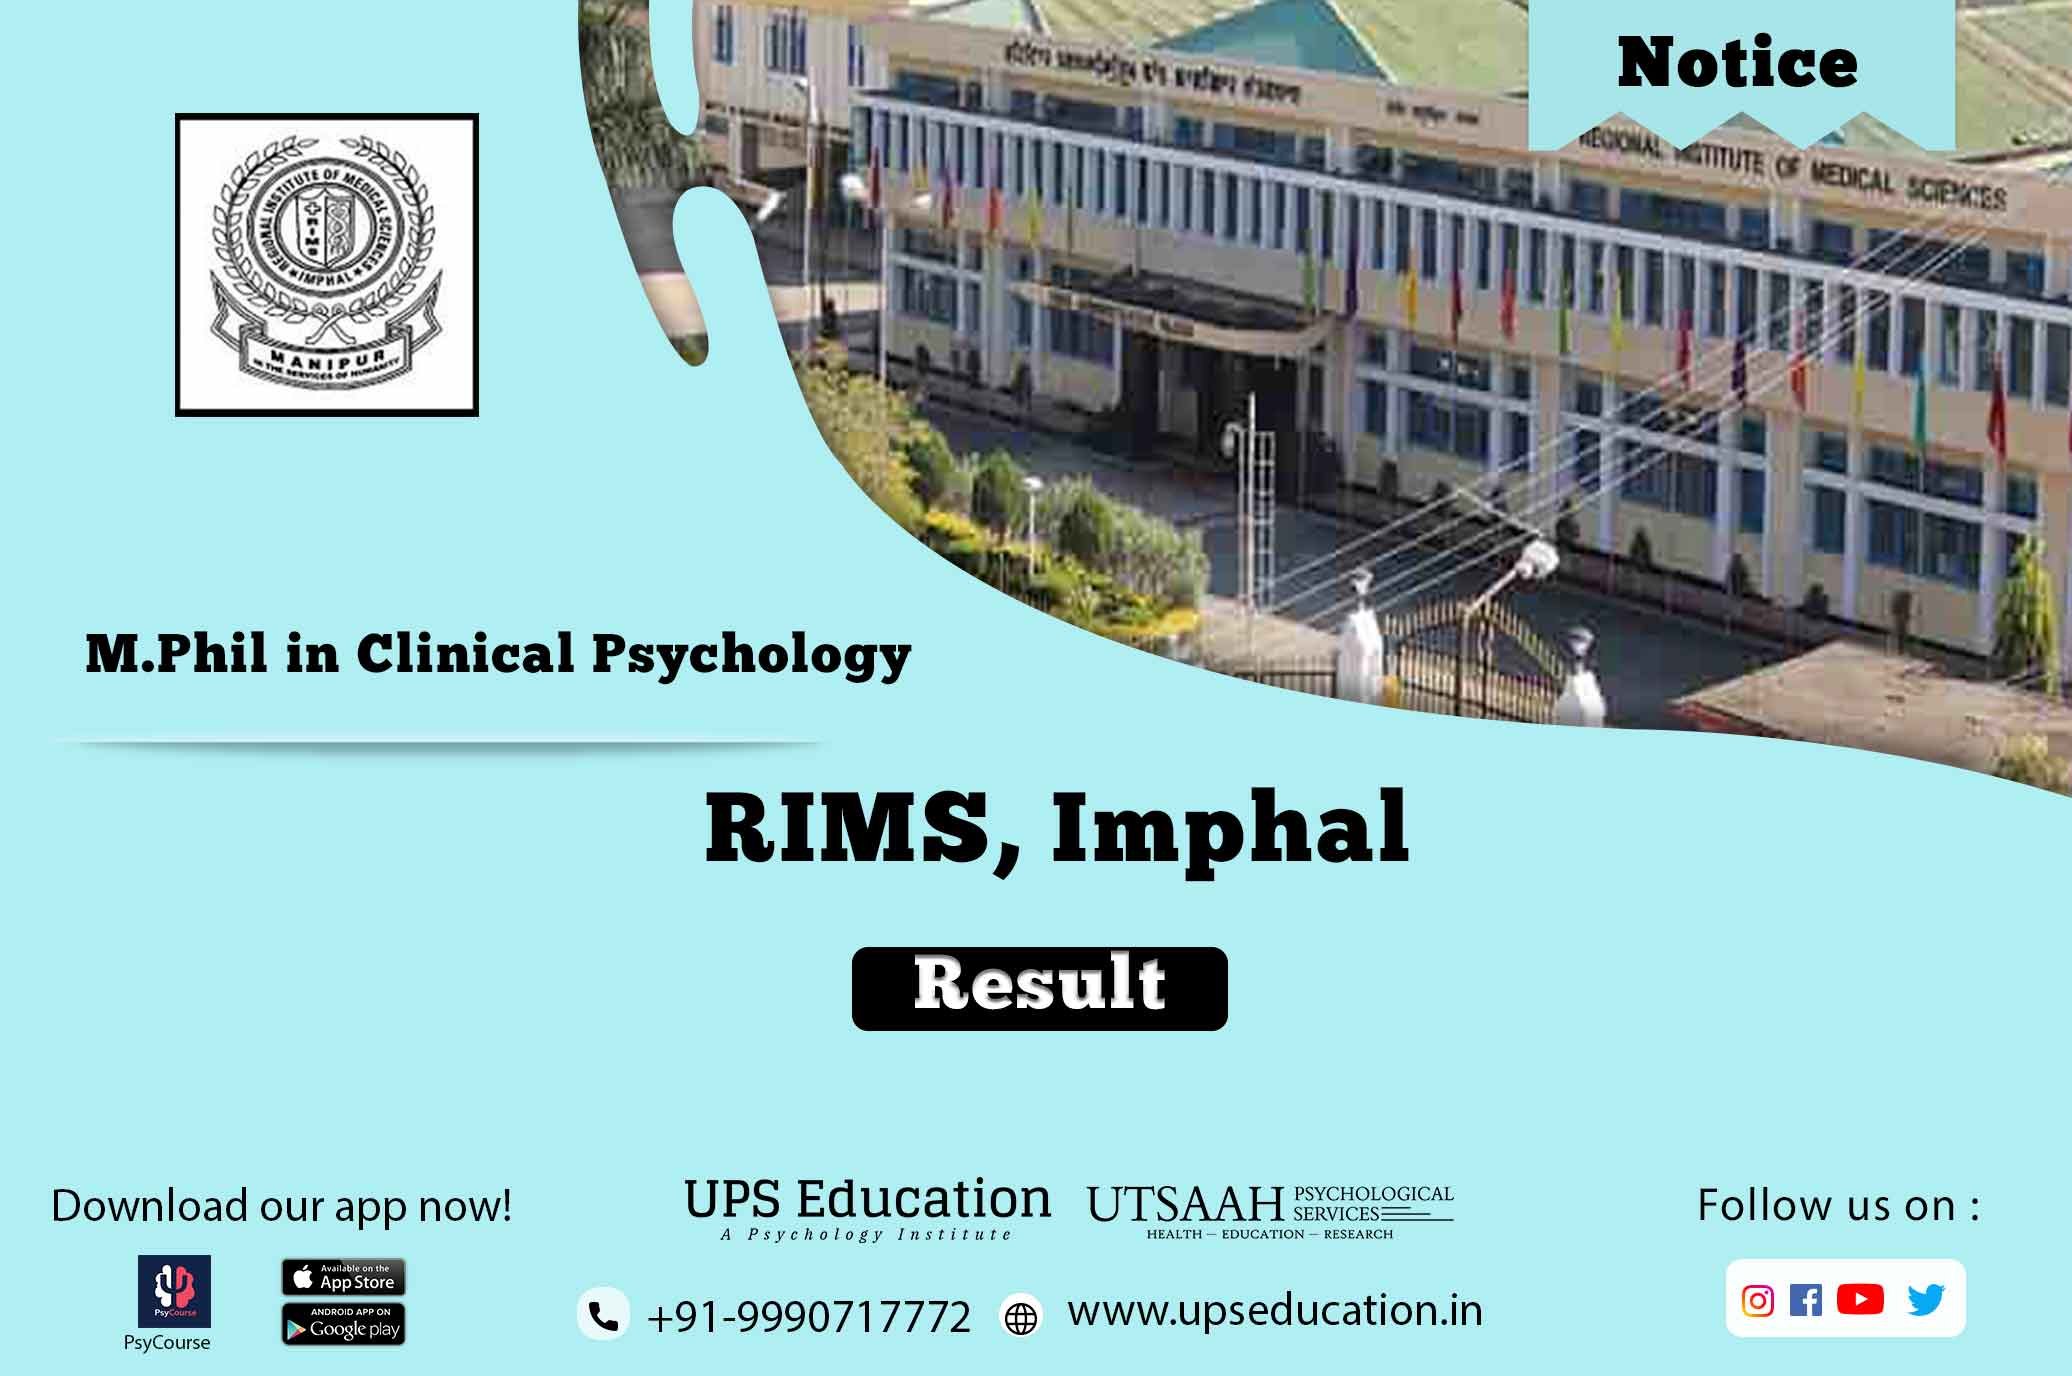 RIMS Imphal M.Phil in Clinical Psychology result